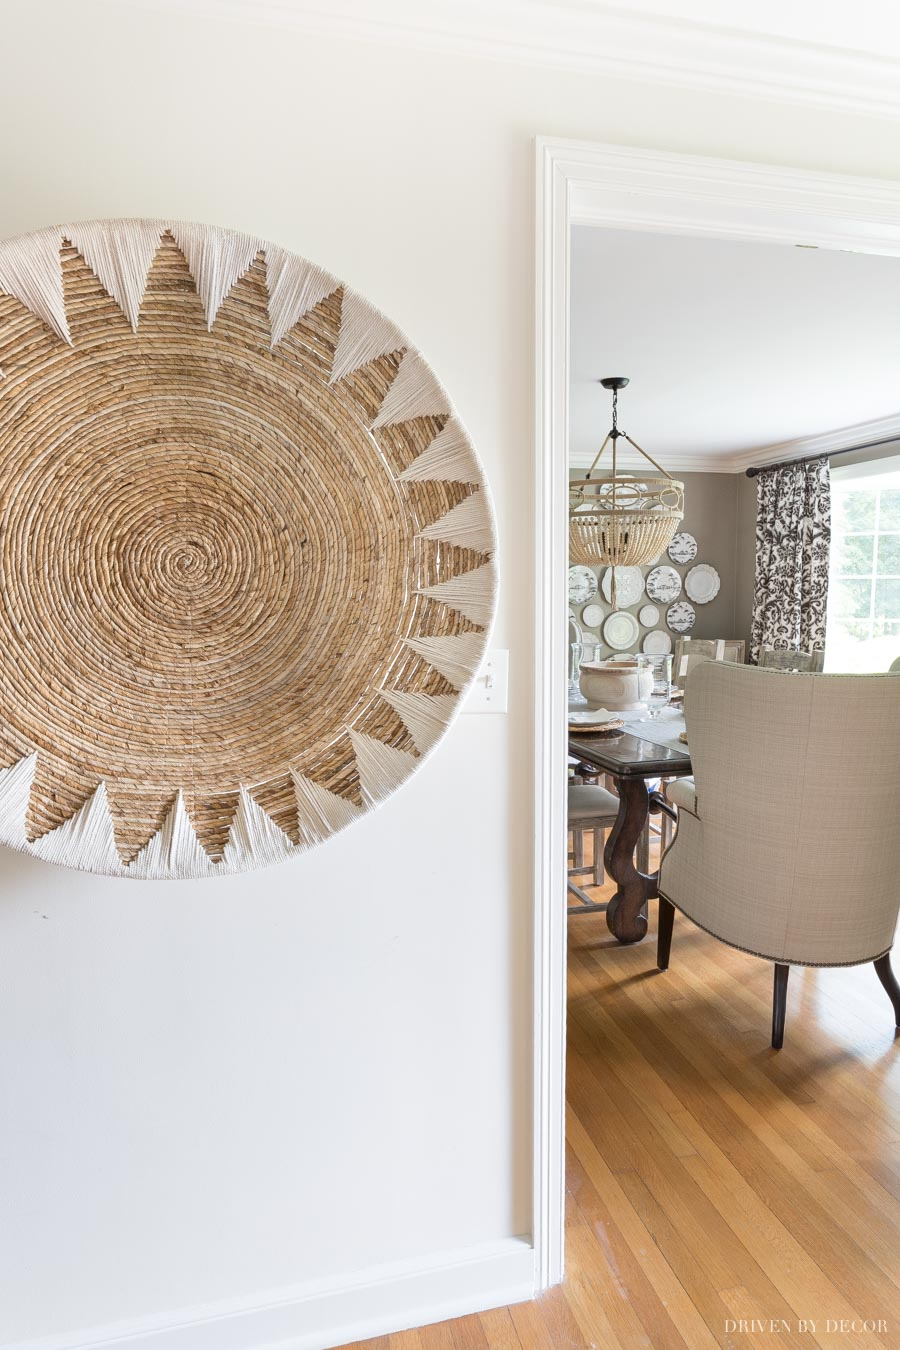 Love this huge woven wall basket - so pretty! It's linked in the post!